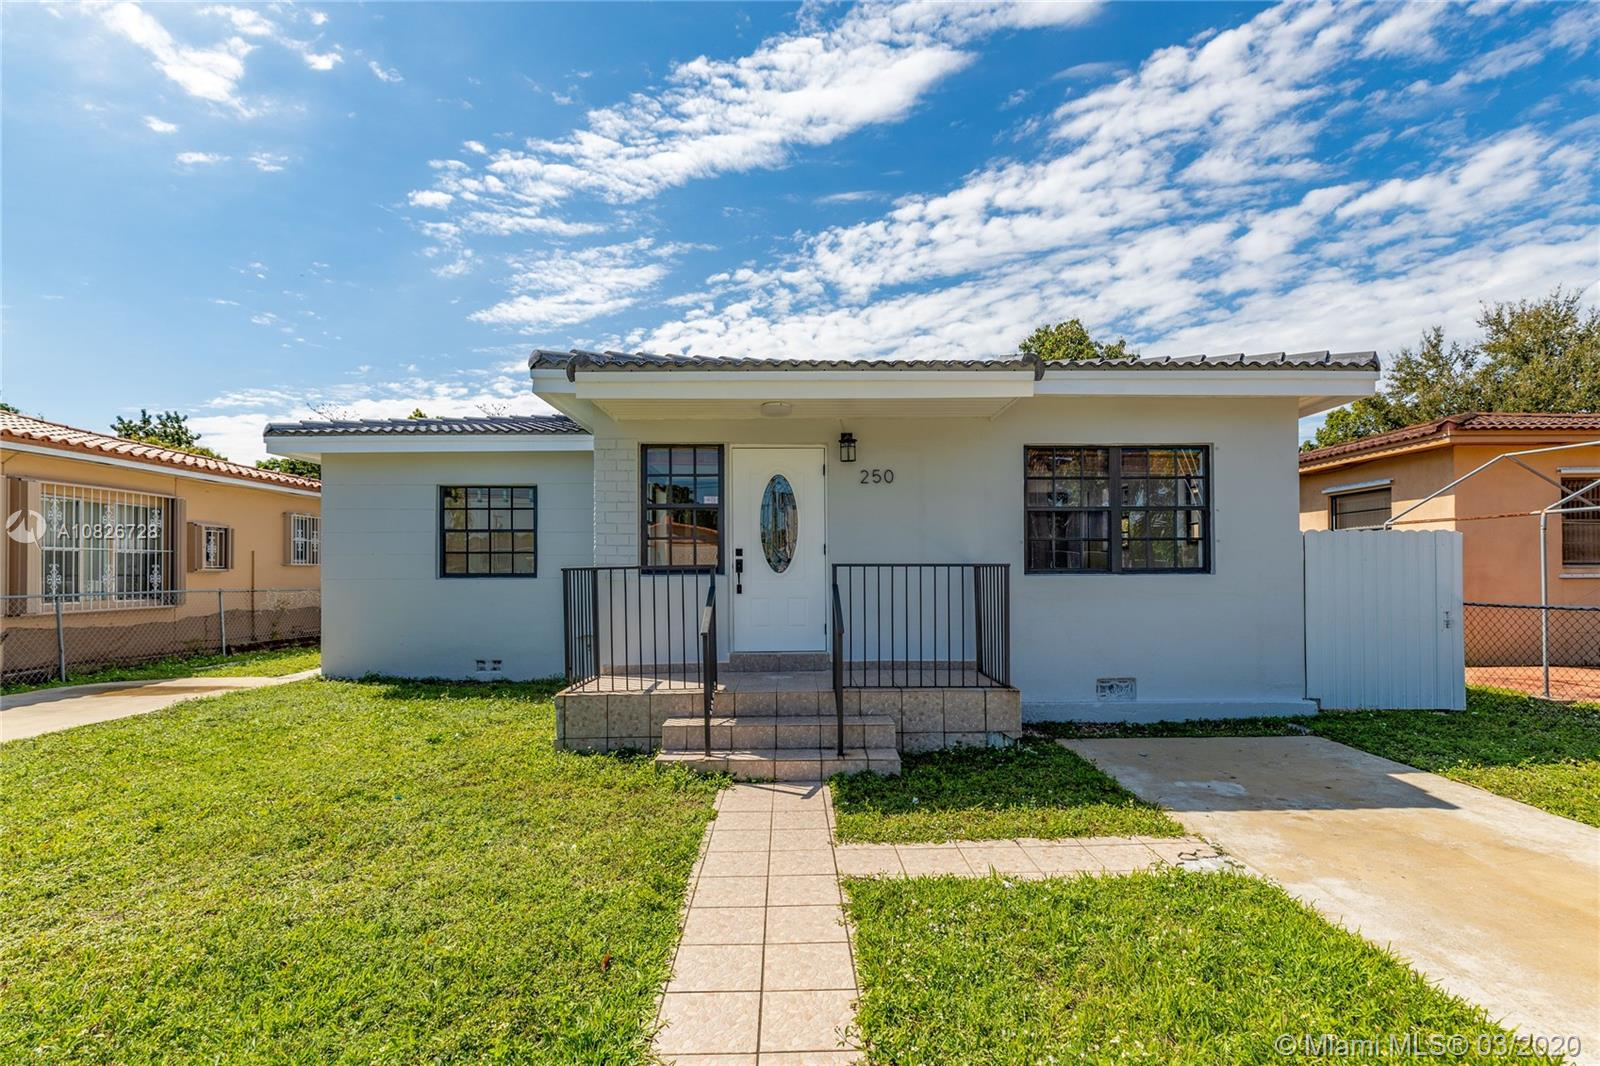 250 NW 62nd Ave, Miami, FL 33126